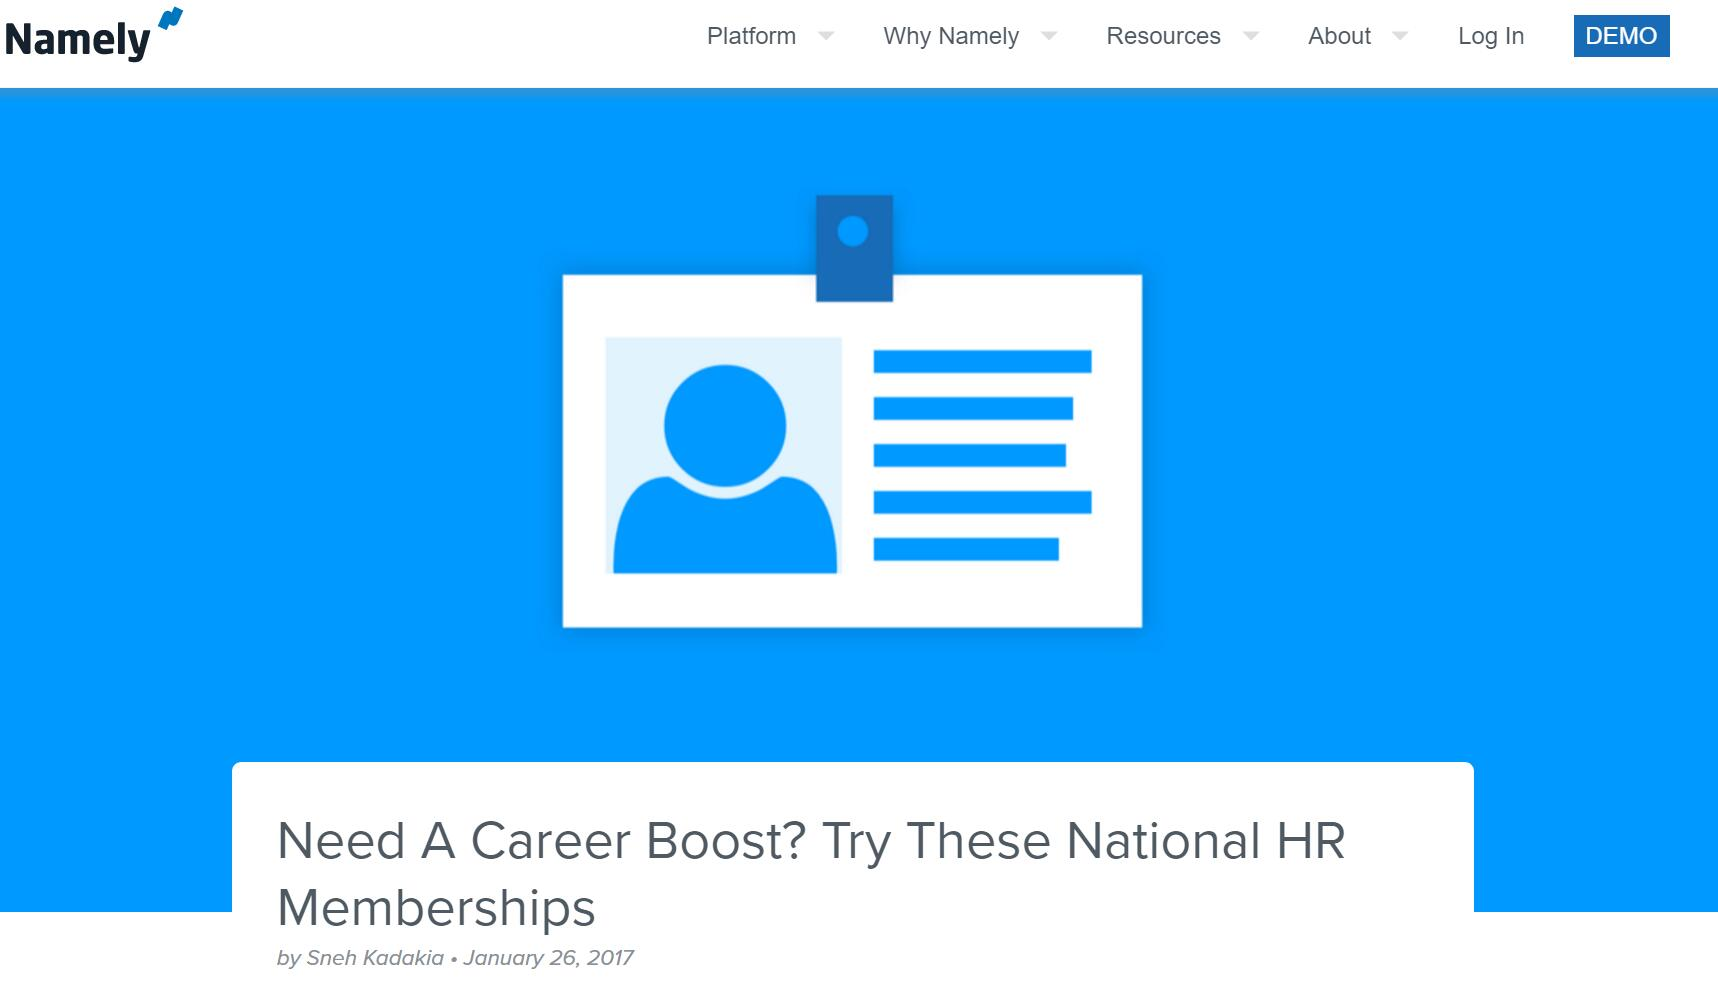 Need A Career Boost? Try These National HR Memberships